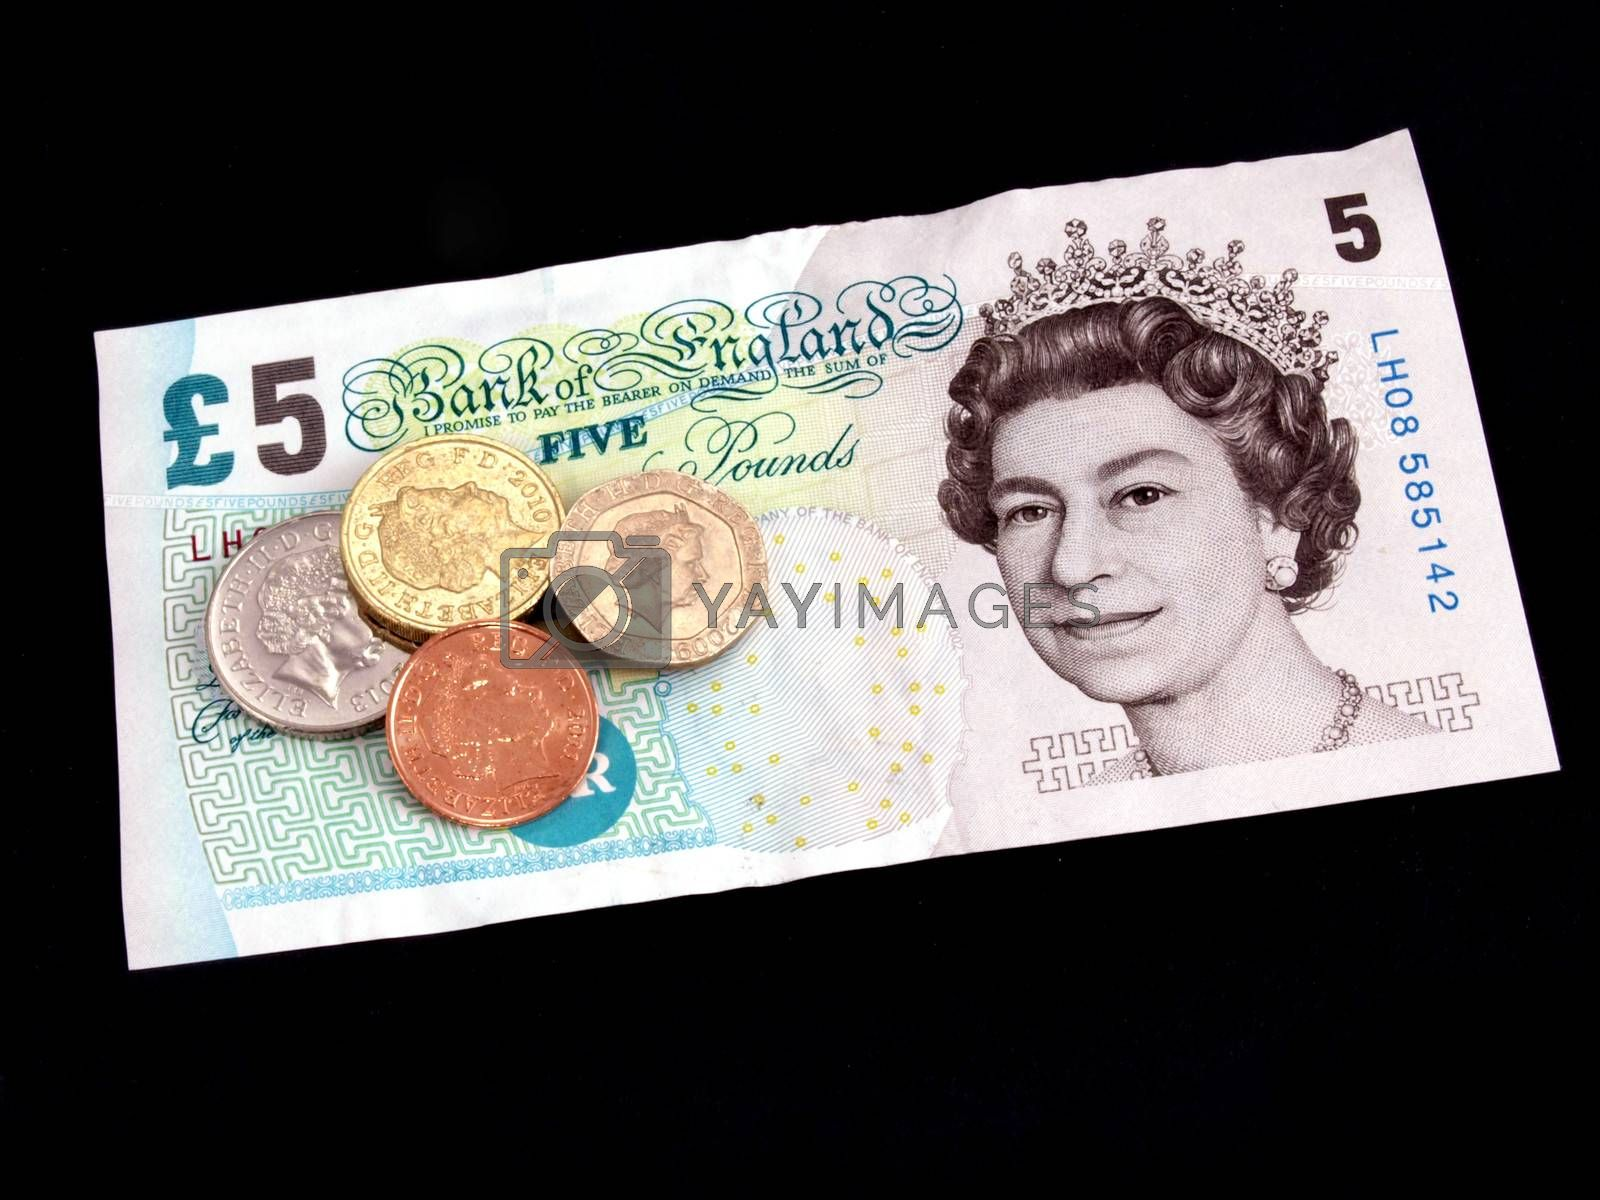 The UK national minimum wage of 6.31 was introduced on 1st October 2013.